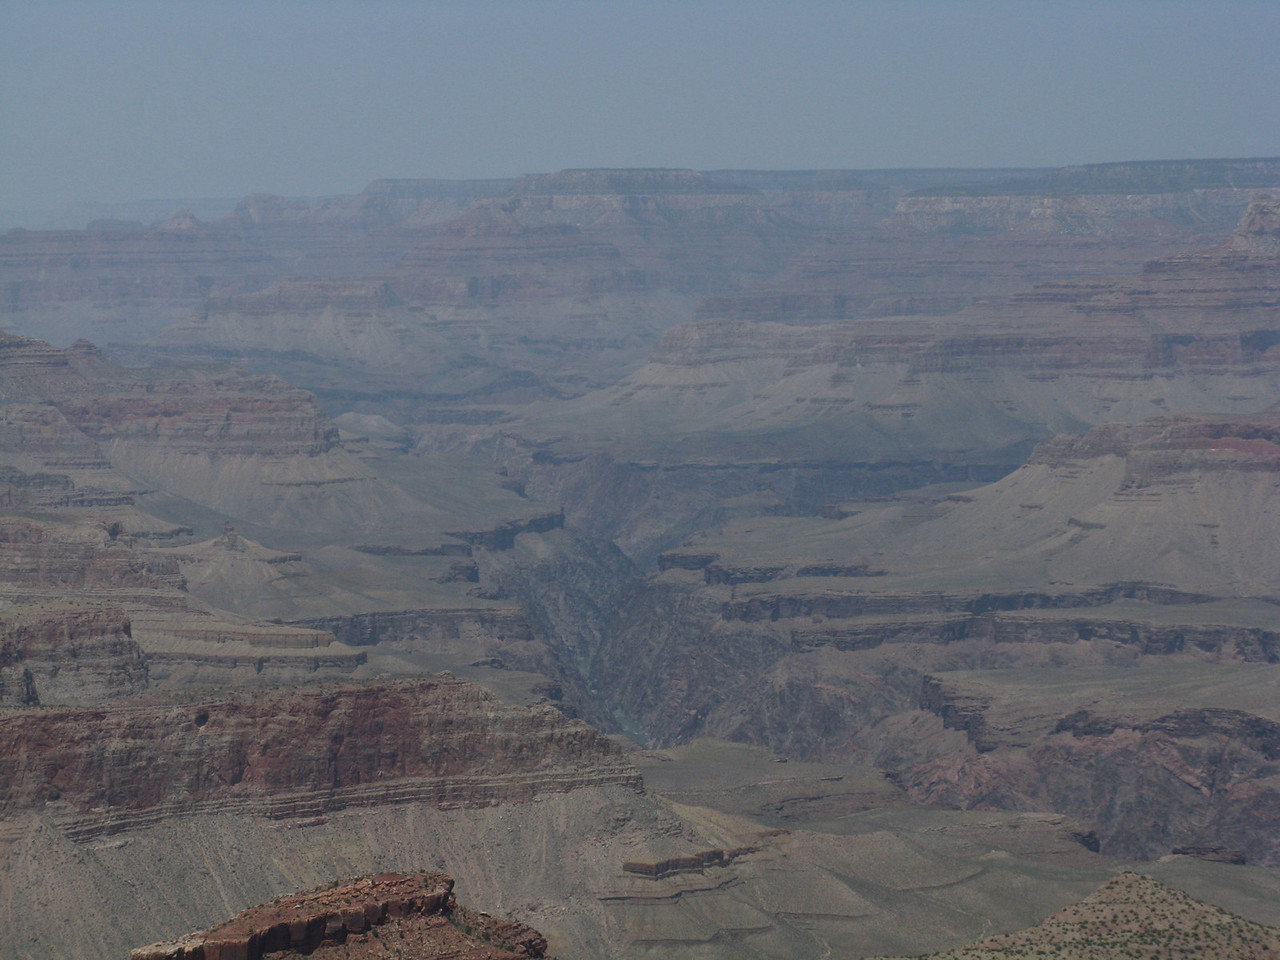 Looking downstream with a glimpse of the bottom of the inner gorge as seen from the rim.